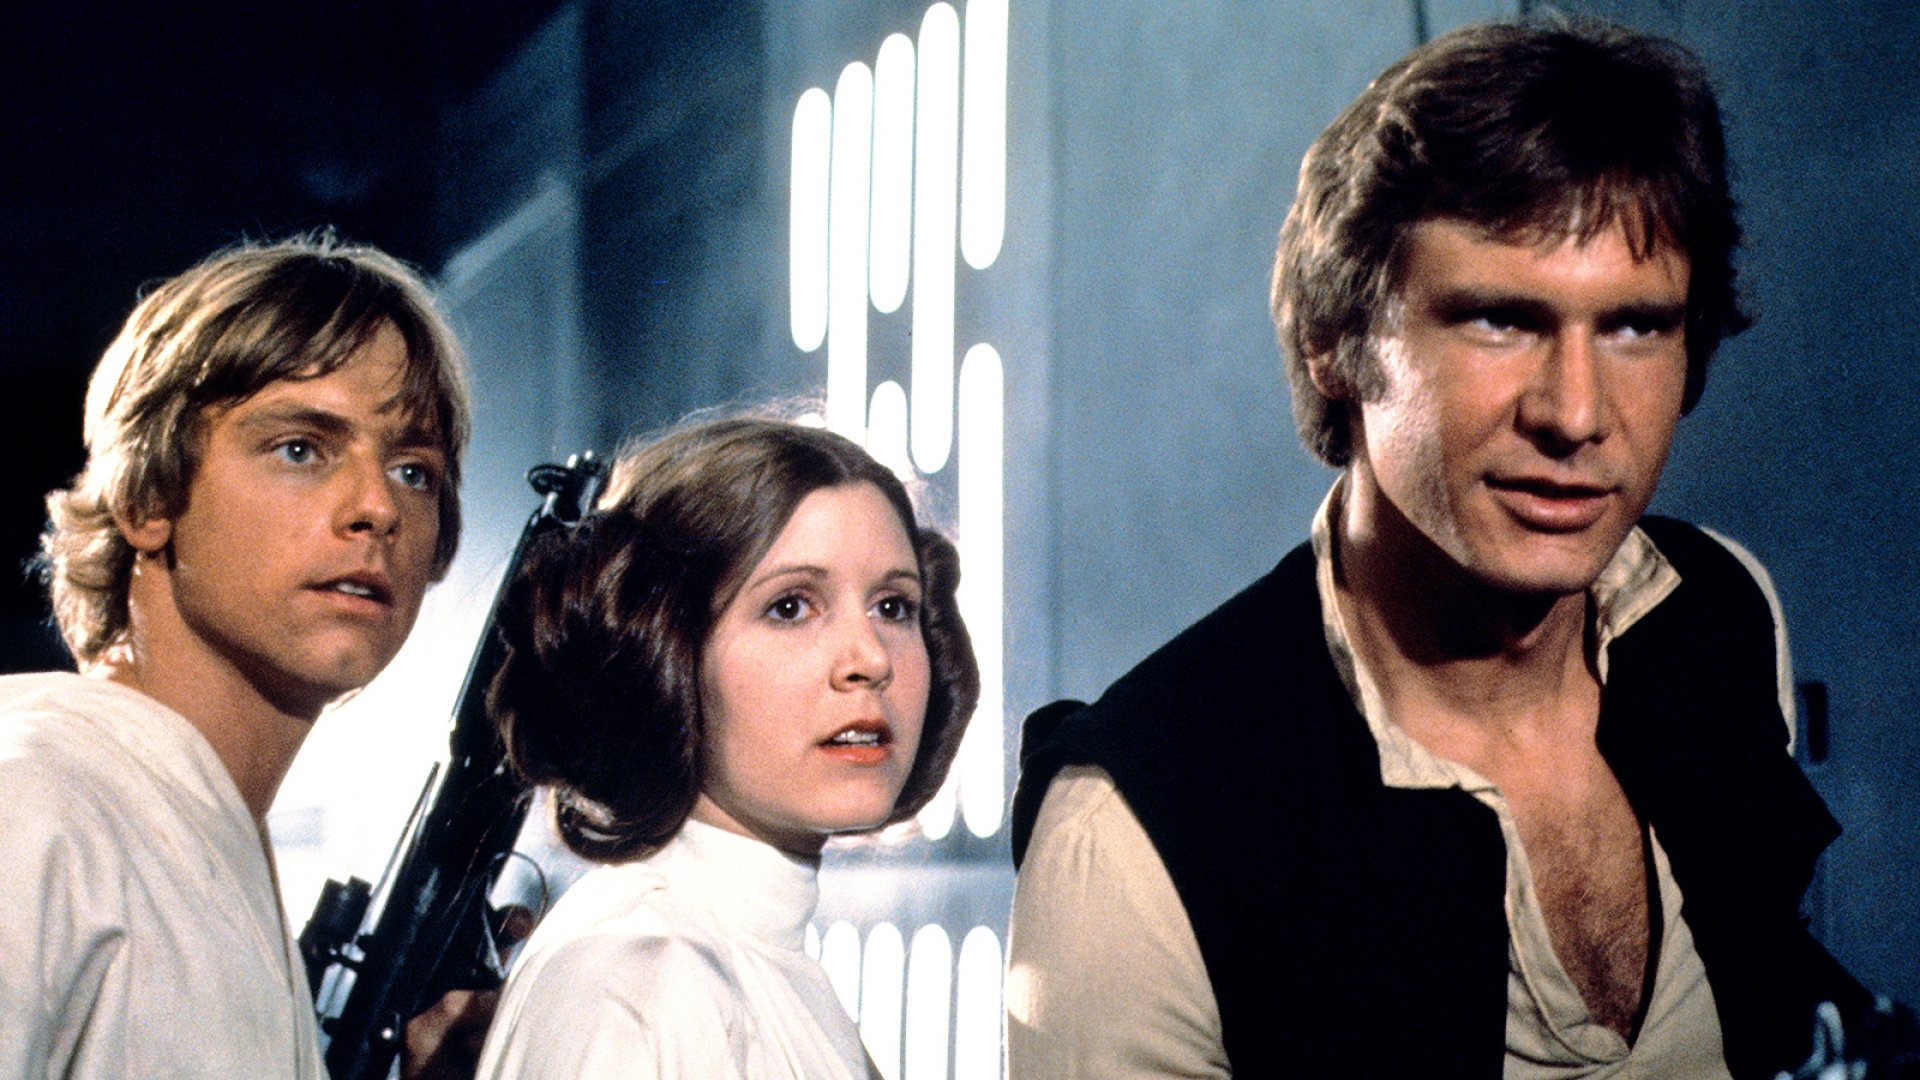 STAR WARS: EPISODE IV - A NEW HOPE; Mark Hamill, Carrie Fisher, Harrison Ford, 1977.